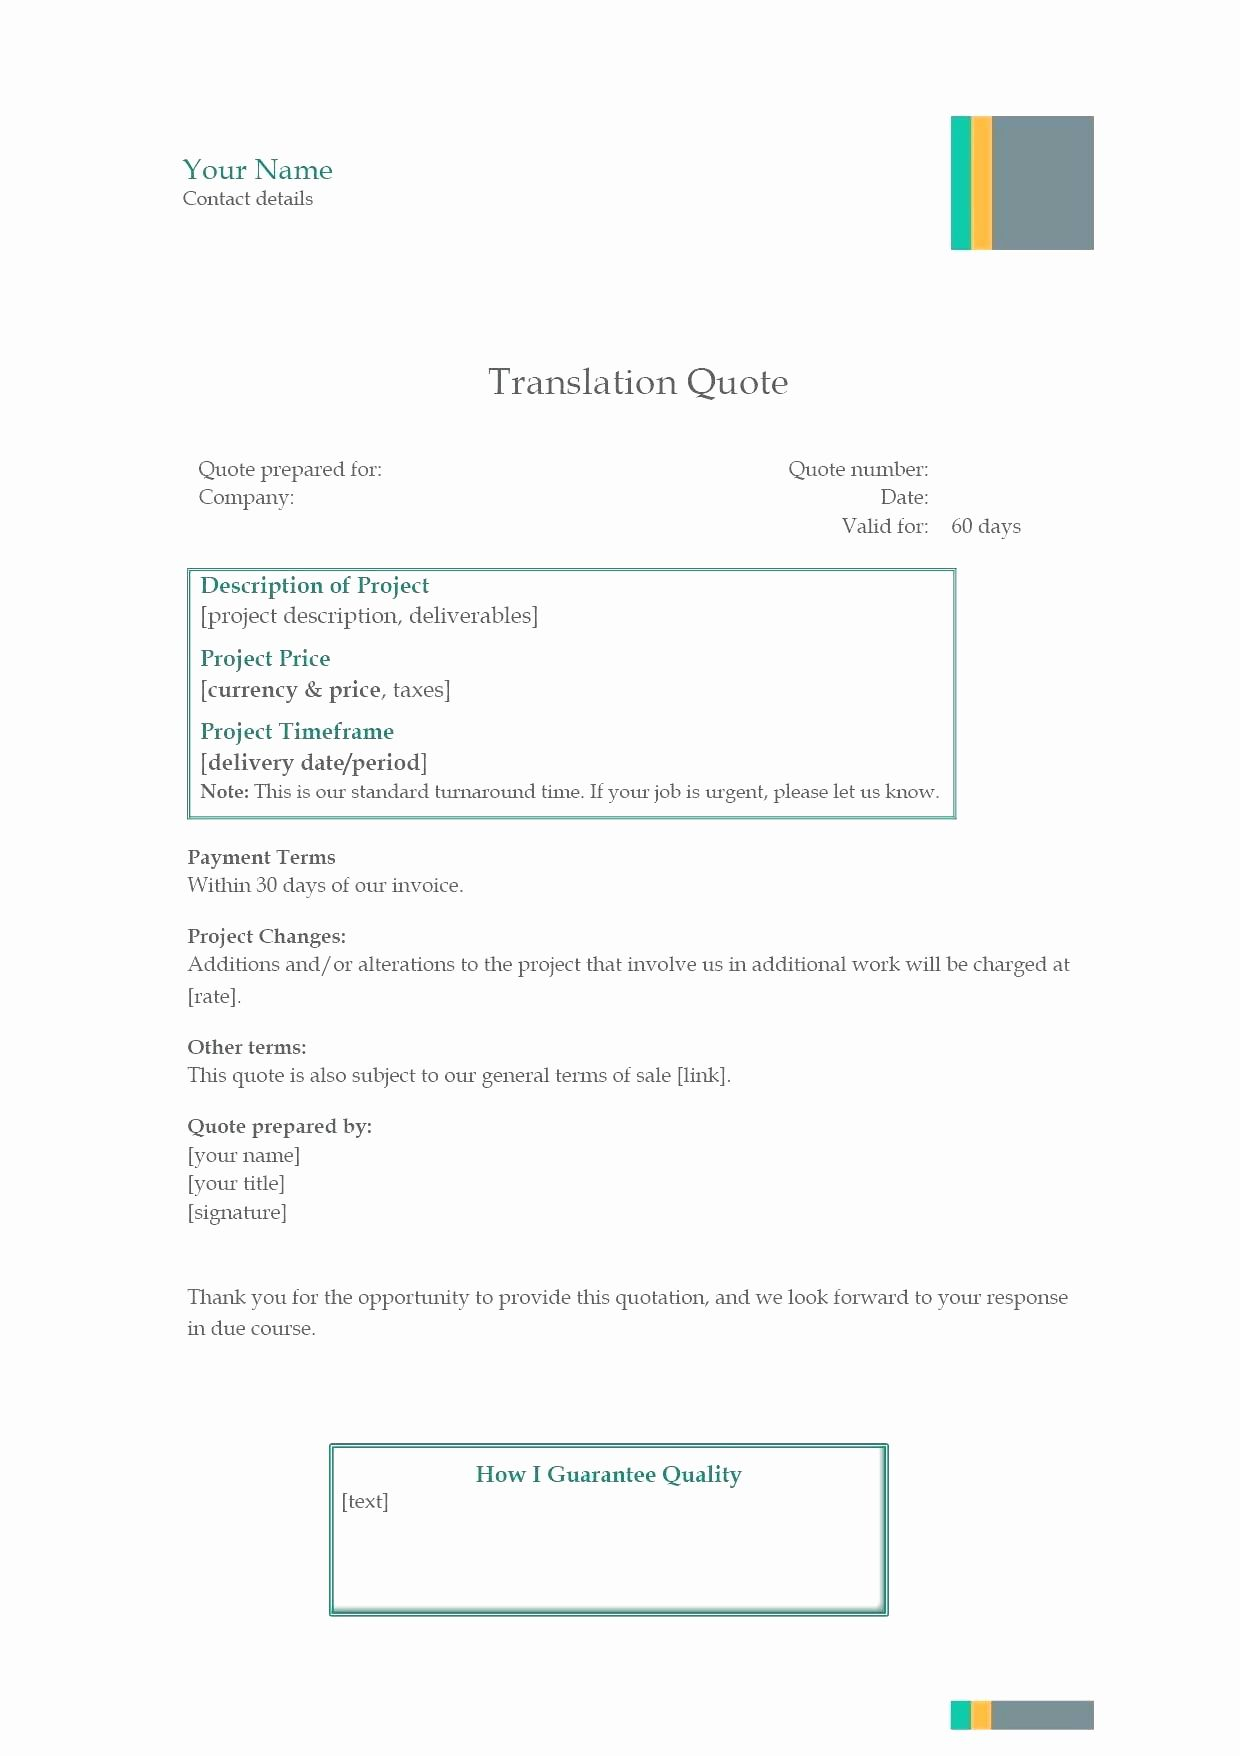 Quotation Tracking Spreadsheet Regarding Excel Quote Template  Glendale Community Document Template